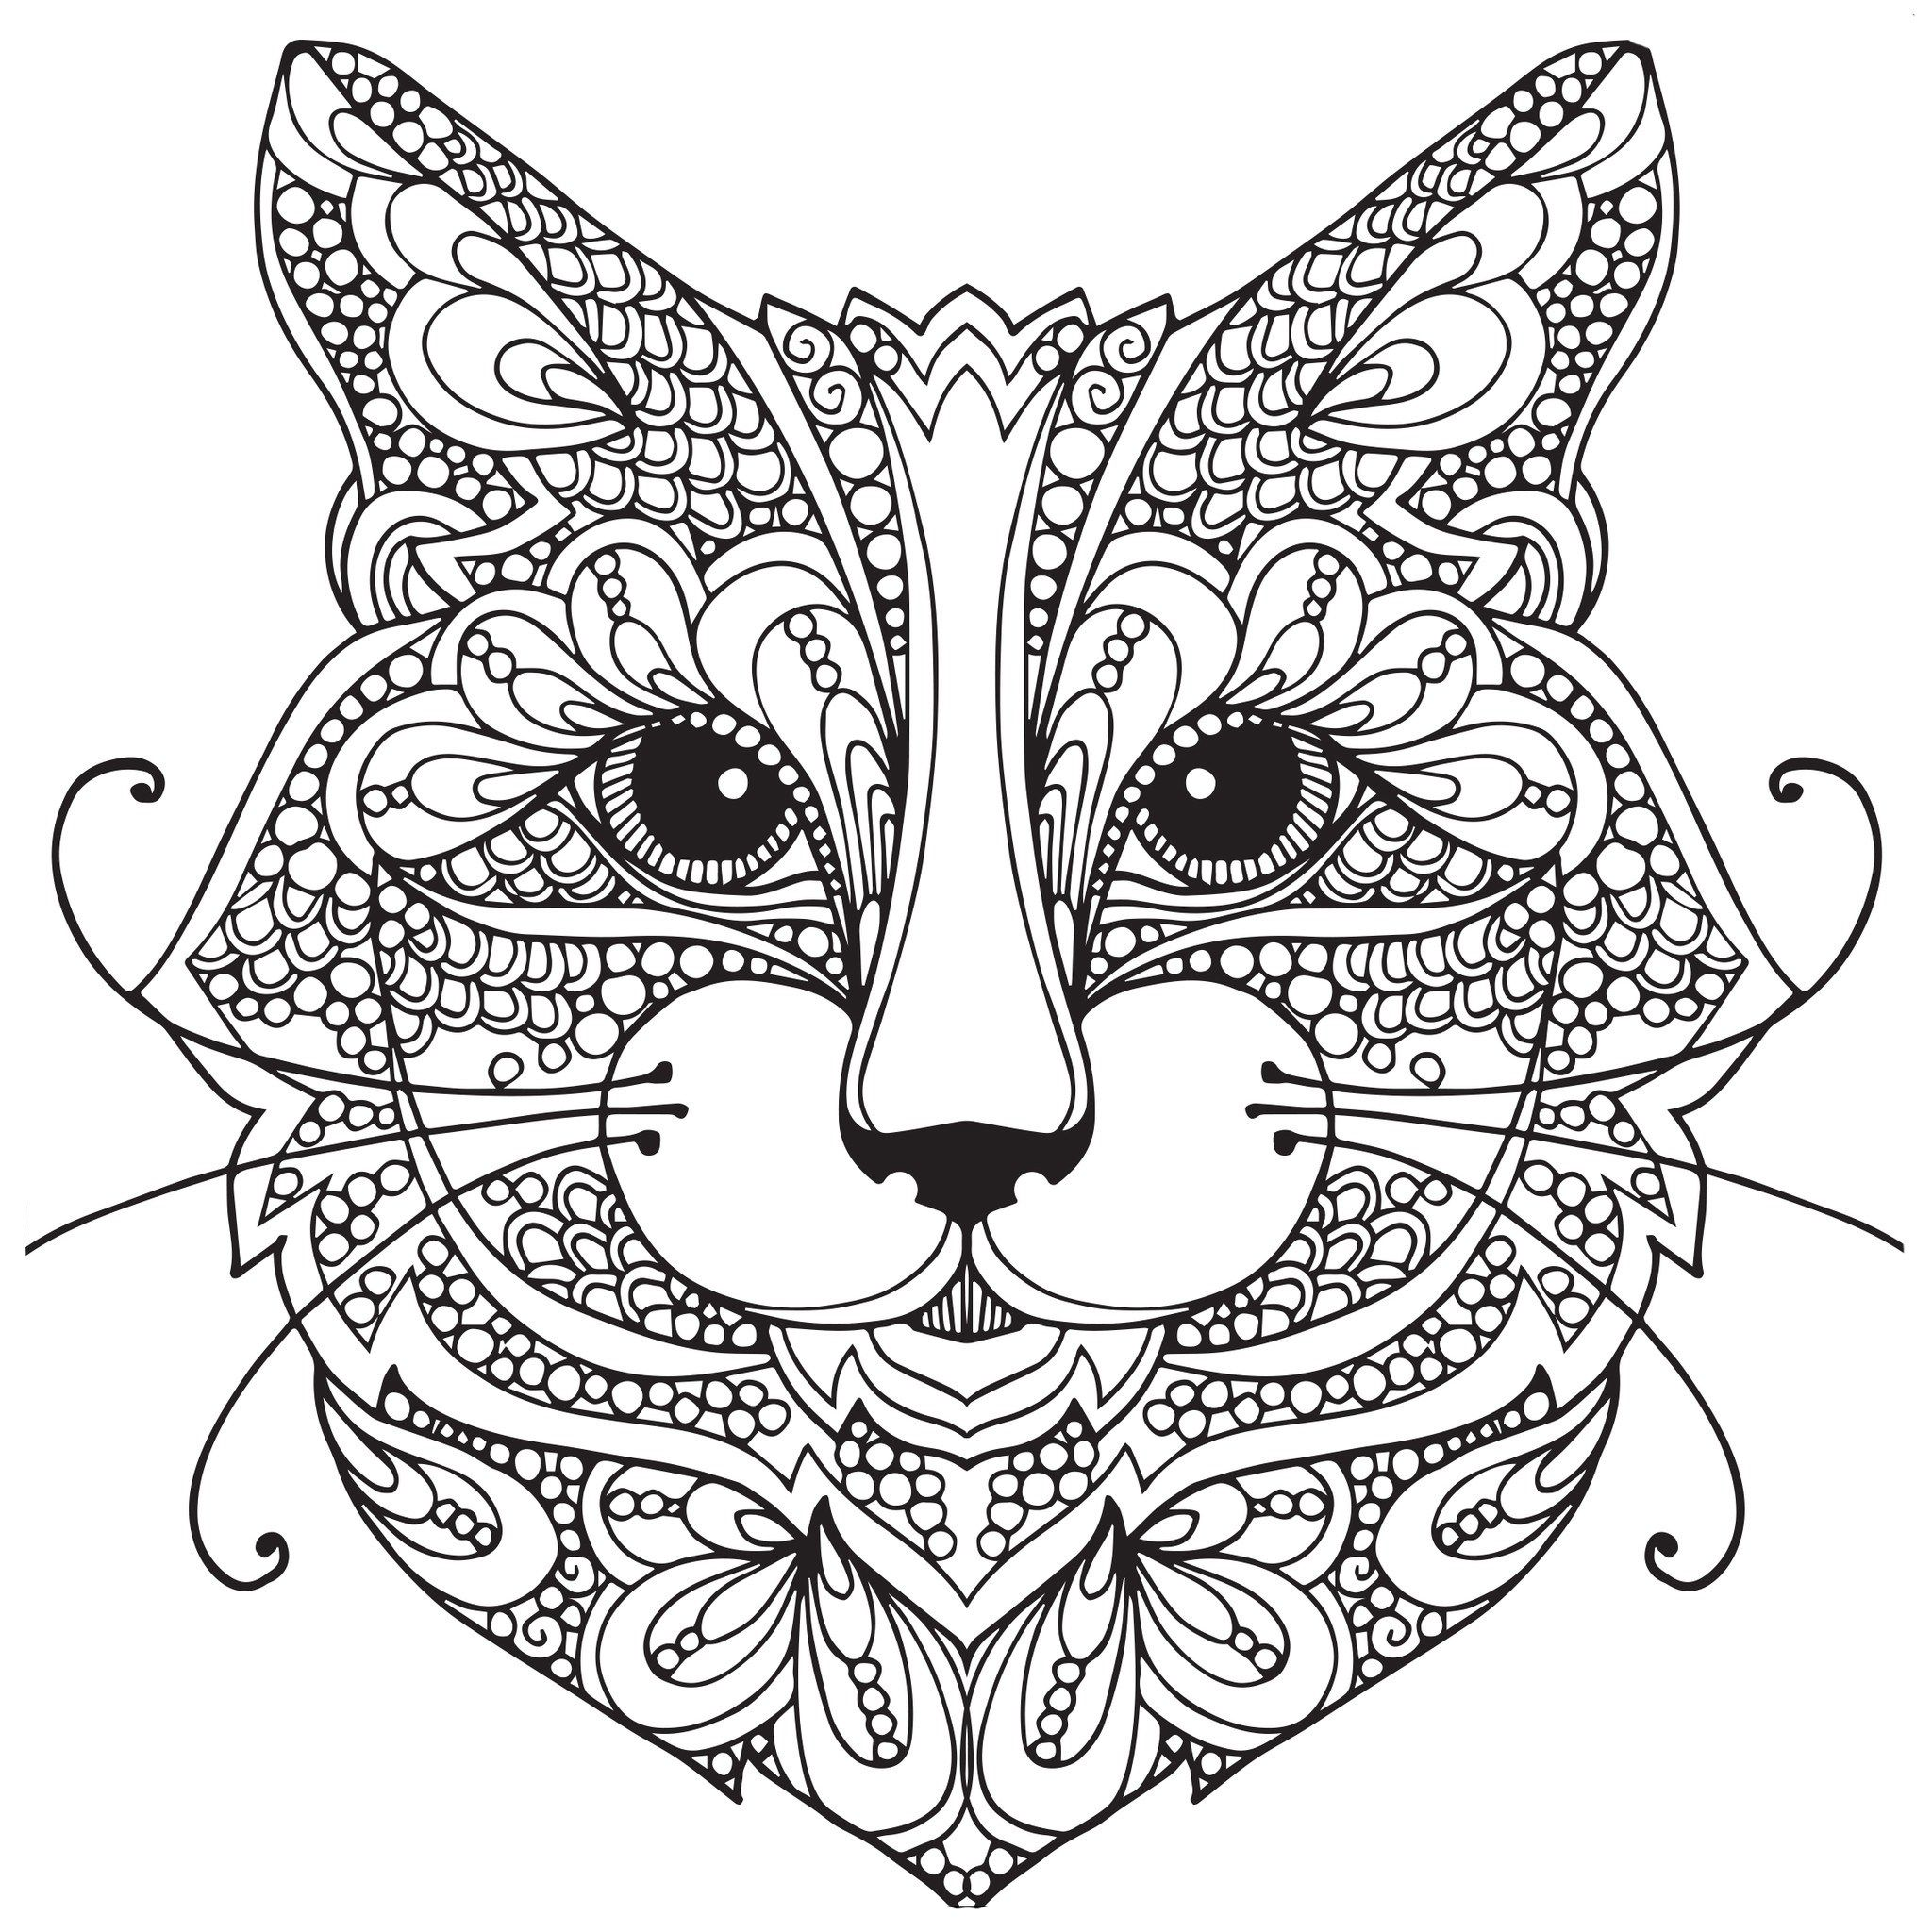 Zen Face Cat Coloring Pages for Adults